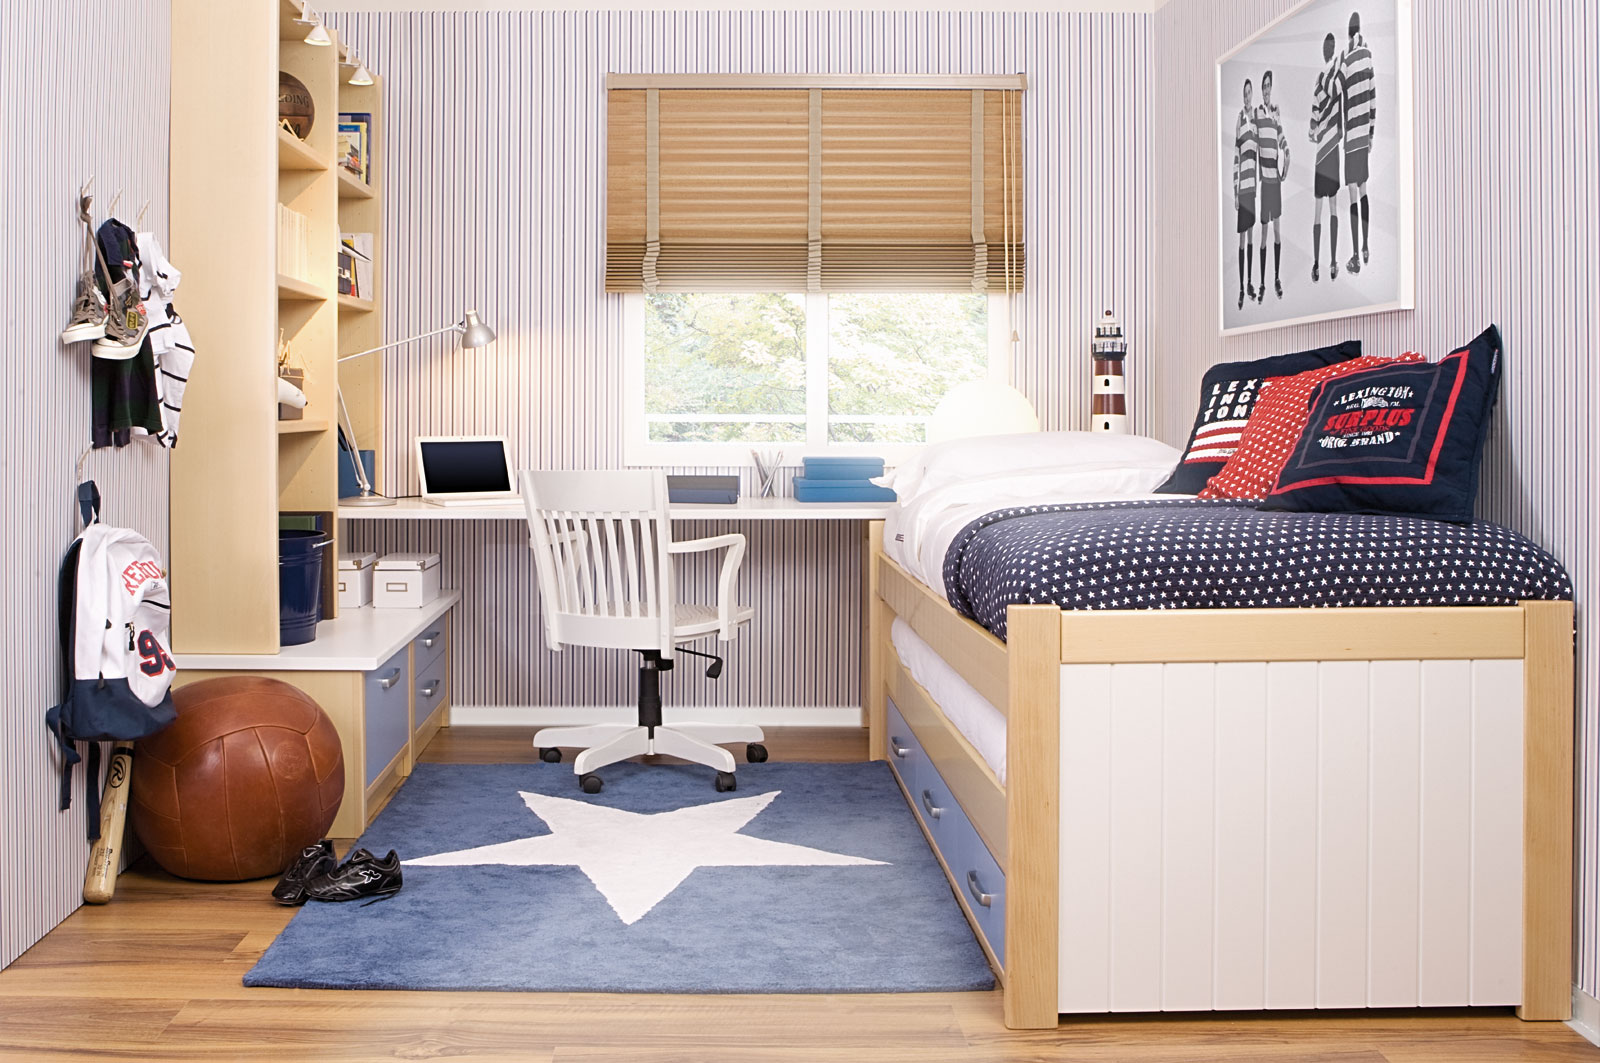 Habitaciones con estilo ideas para decorar un dormitorio - Ideas para decorar dormitorio infantil ...